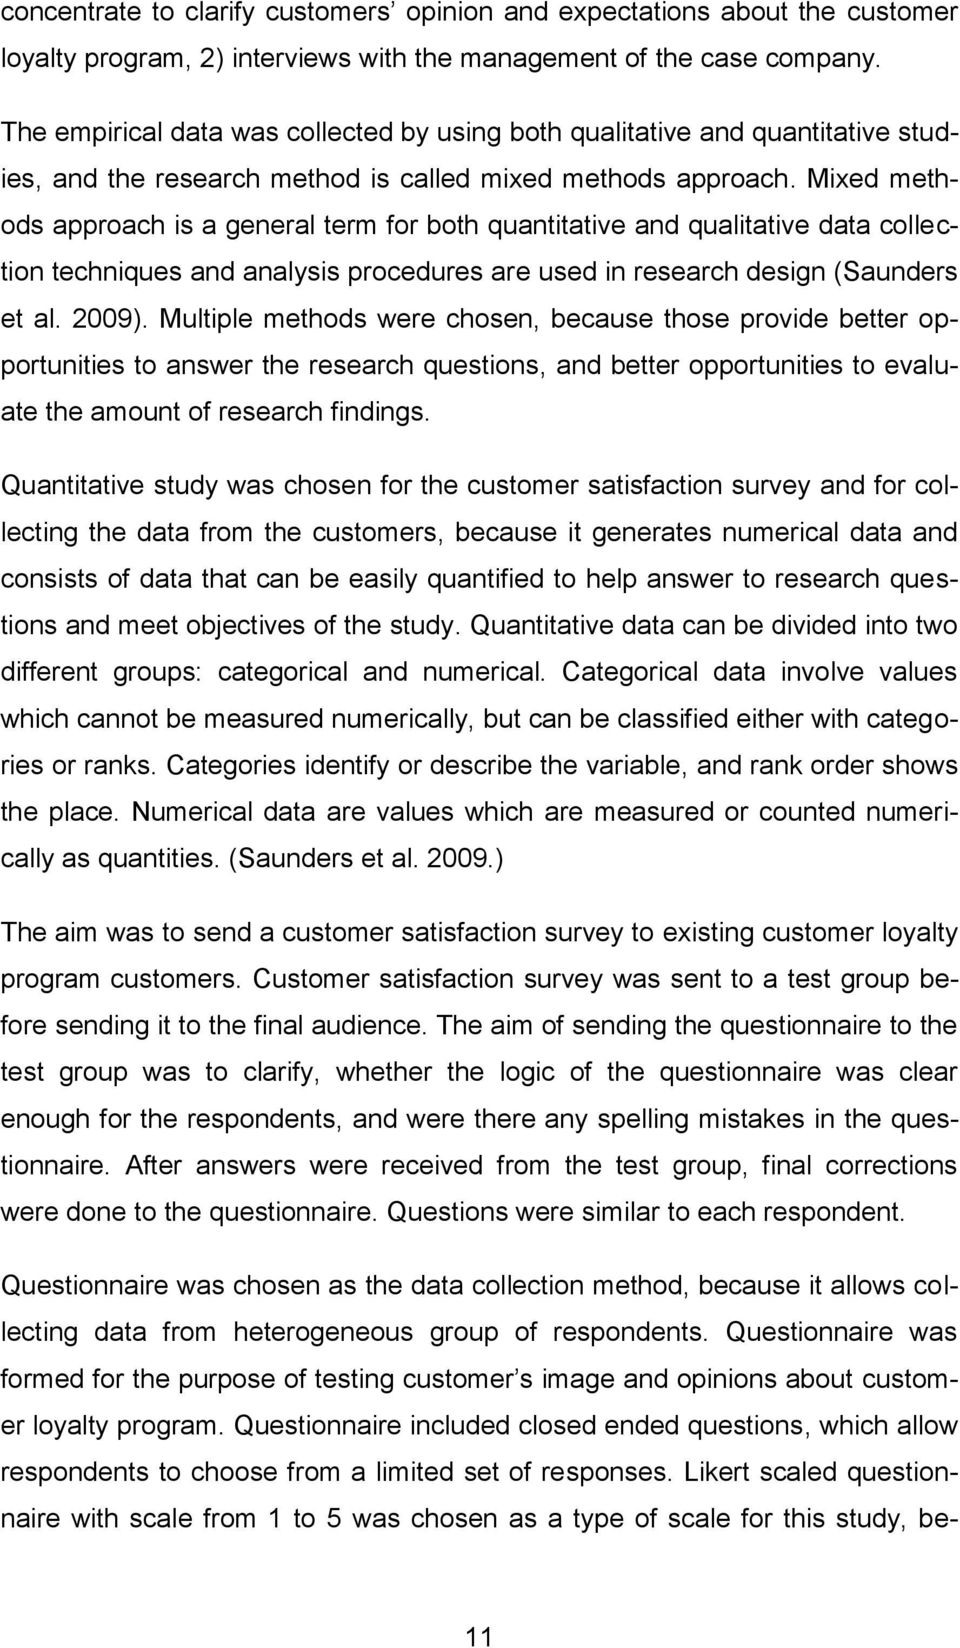 Try these Customer Loyalty Questions for your Relationship Survey